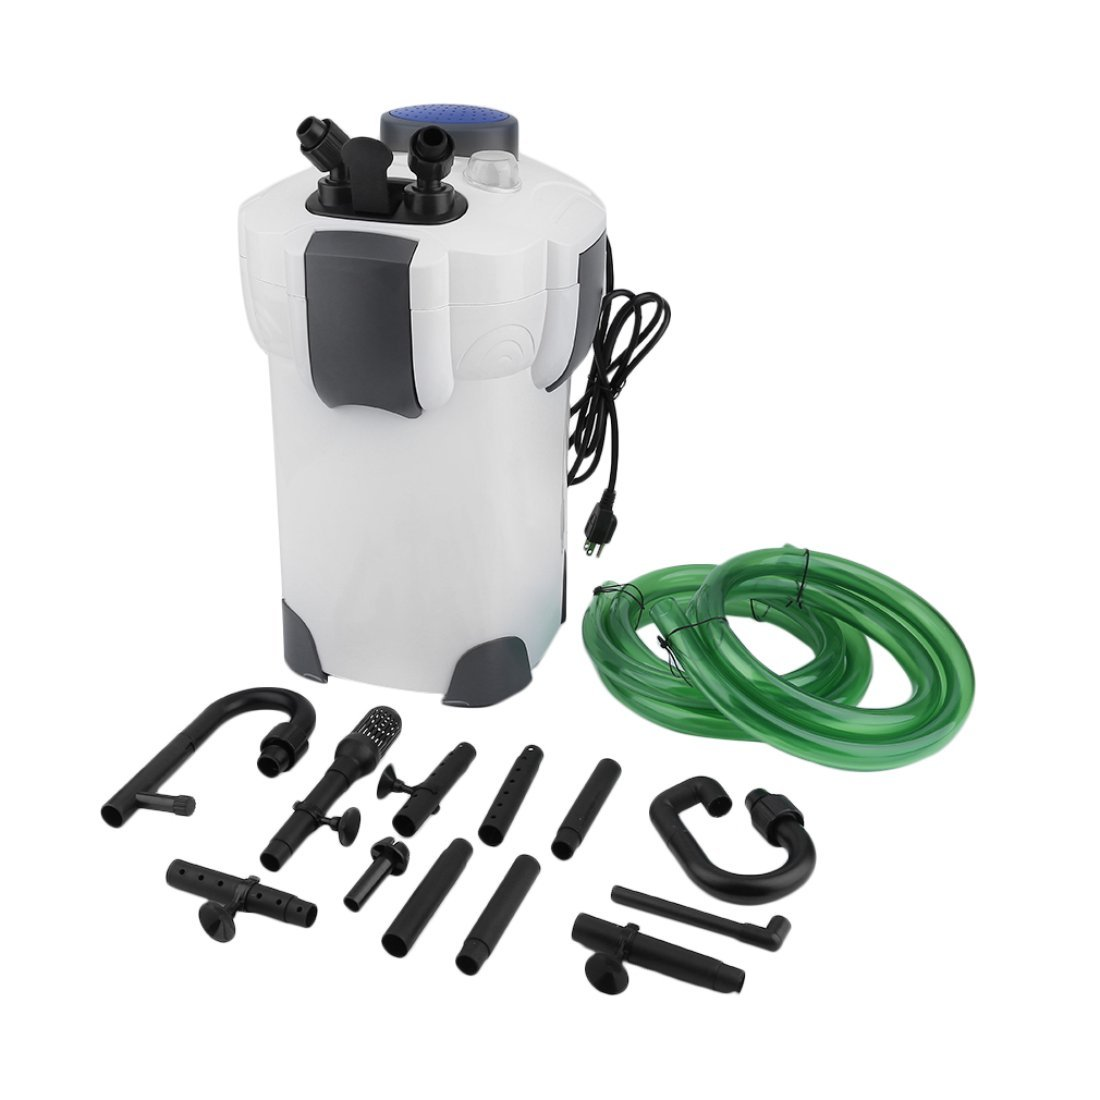 Professional 200 Gallon Aquarium Fish Tank External Canister Filter & Media Kits Self Priming With 4 Stage Filtration Formulatwoo